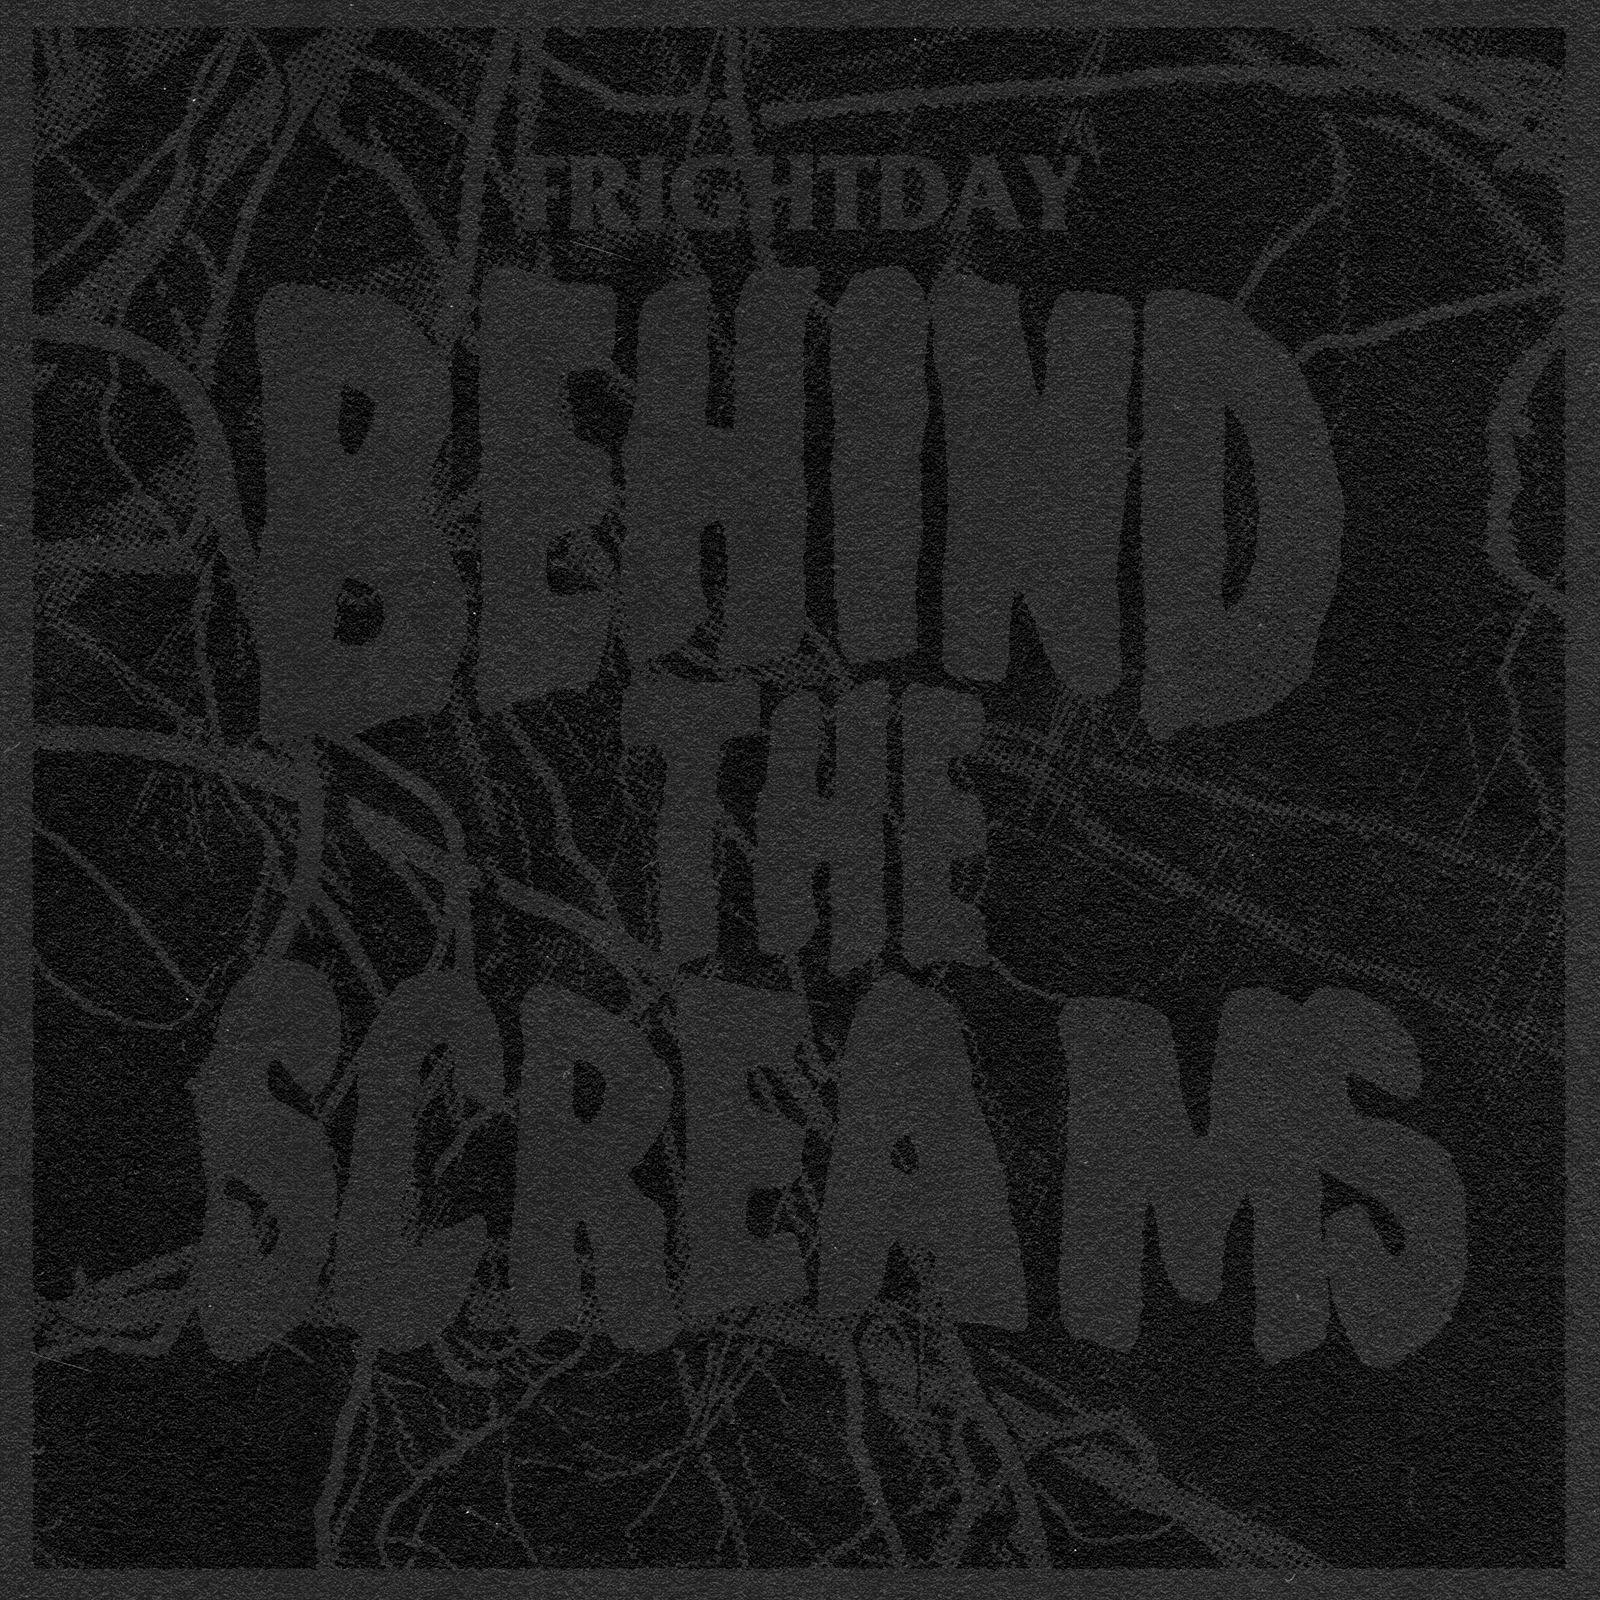 Behind the Screams: Back to the Big Screen? (Excerpt)